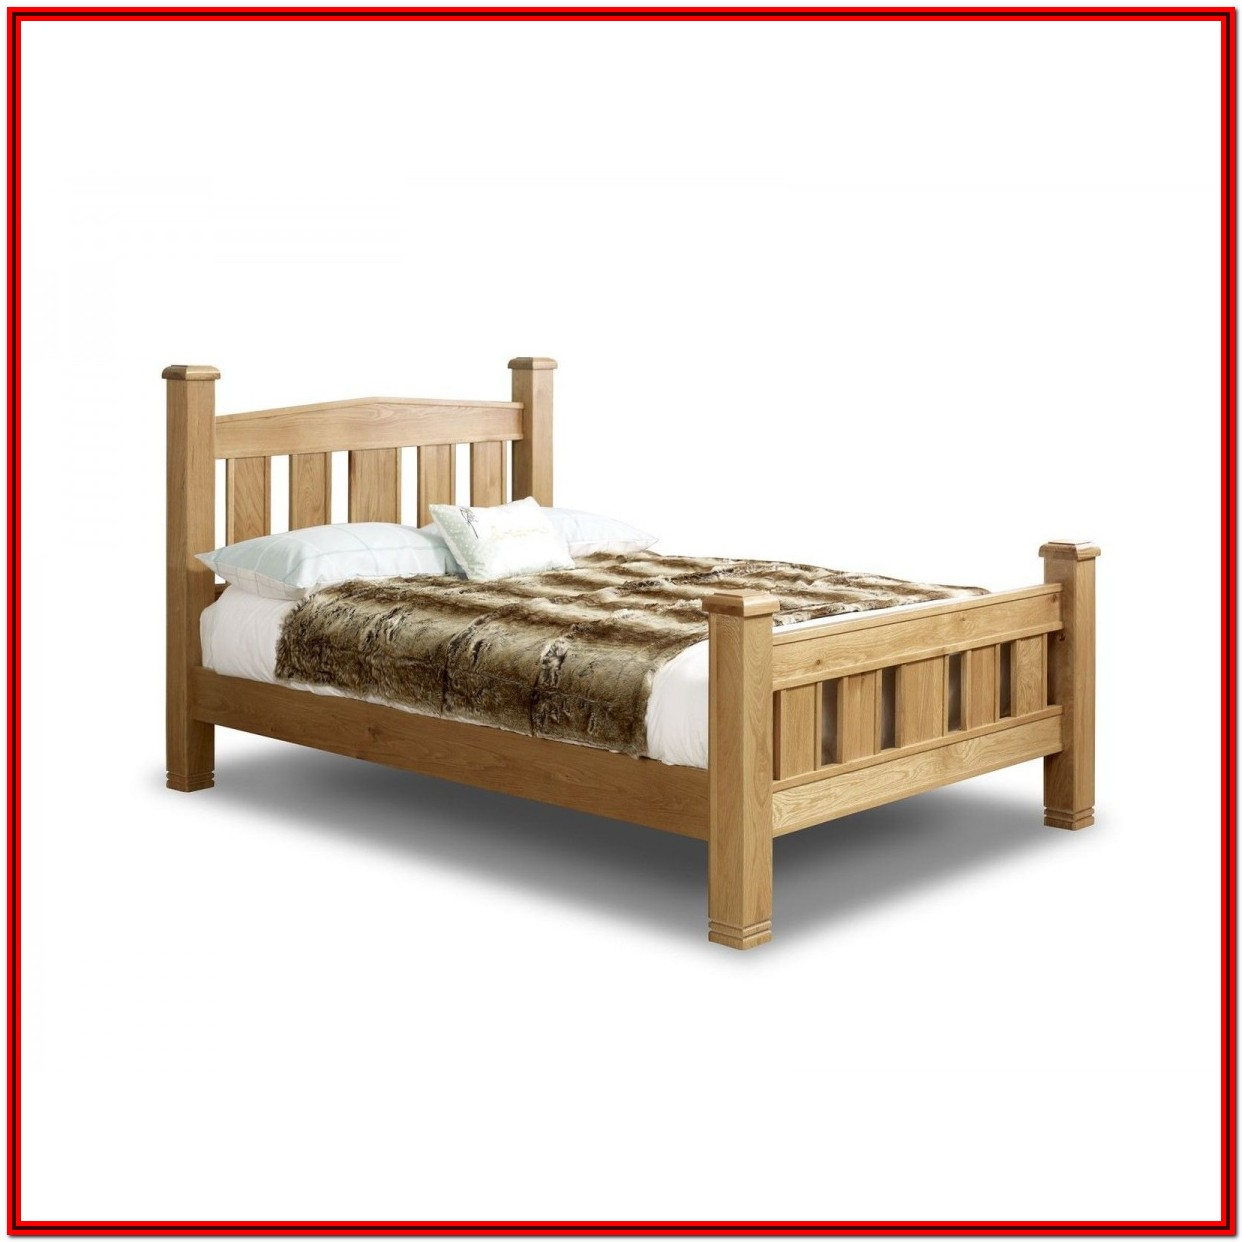 Oak Bed Frame King Size Uk